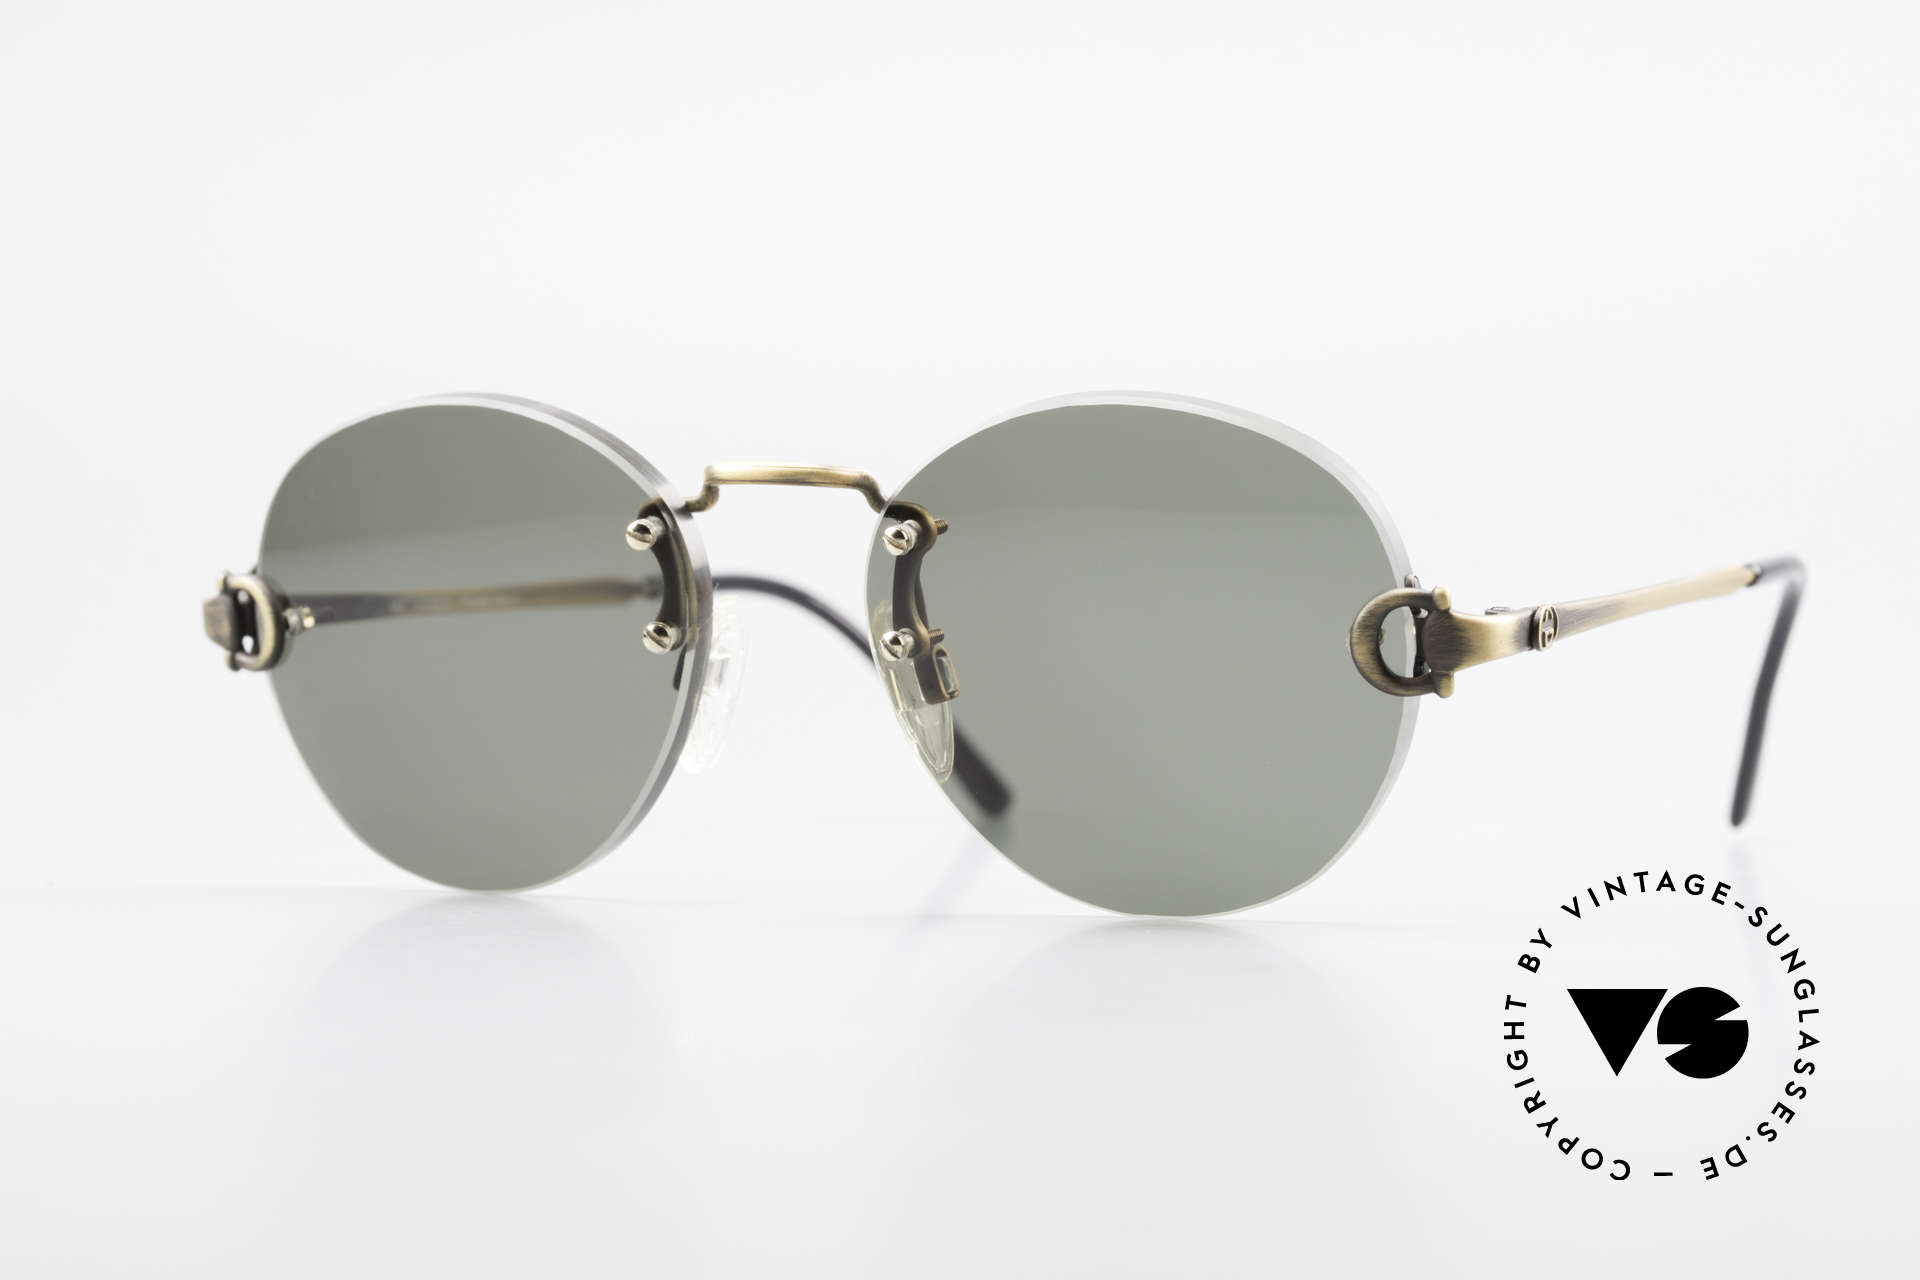 Gucci 2223 Rimless Round Sunglasses, rare vintage RIMLESS 1980's sunglasses by GUCCI, Made for Men and Women